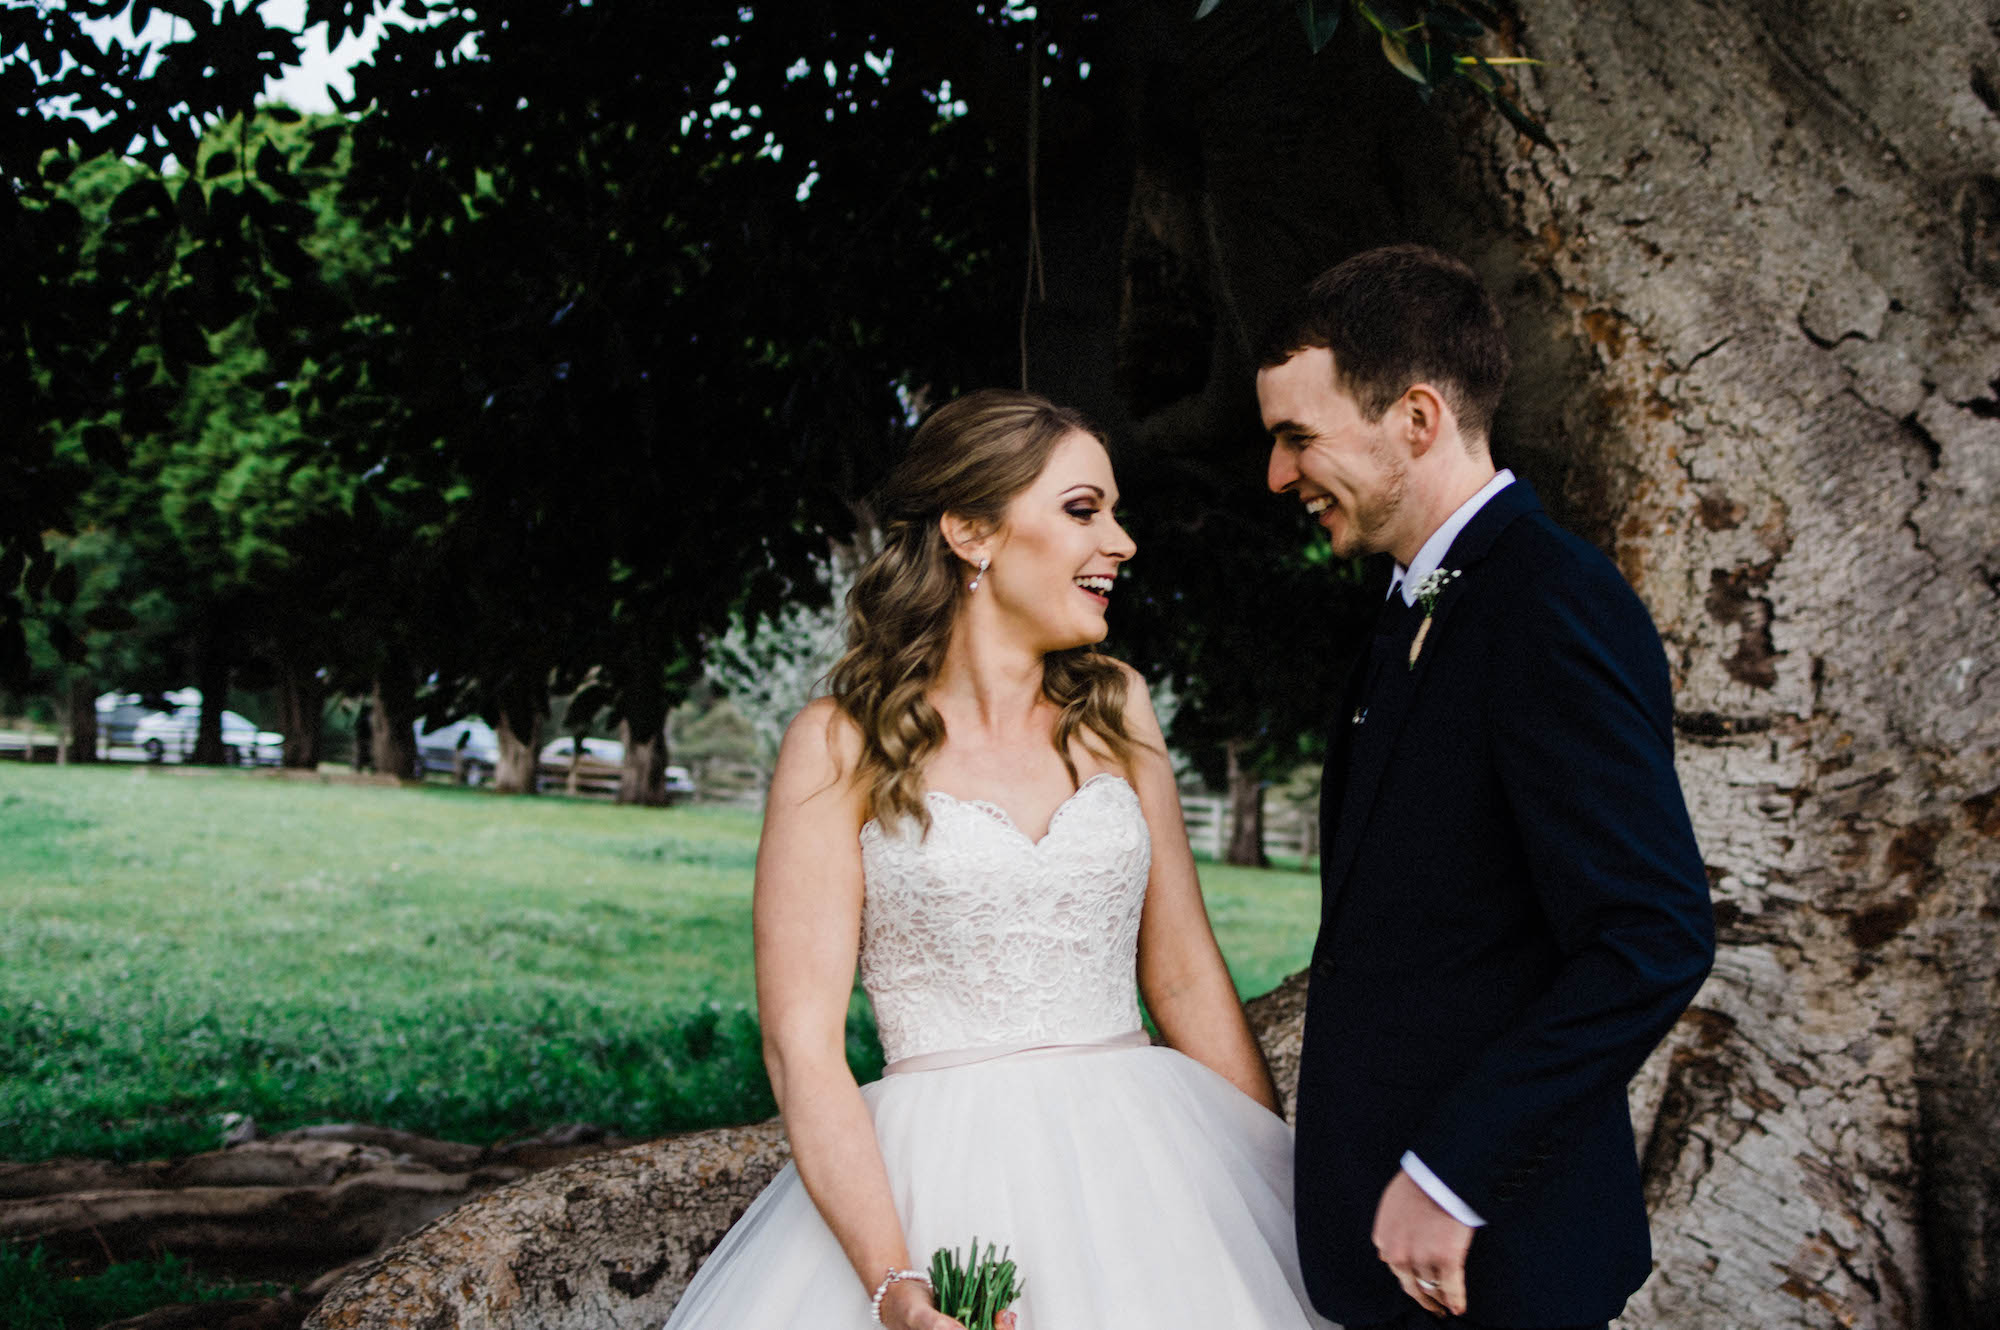 A candid wedding photo of the bride & groom laughing together.